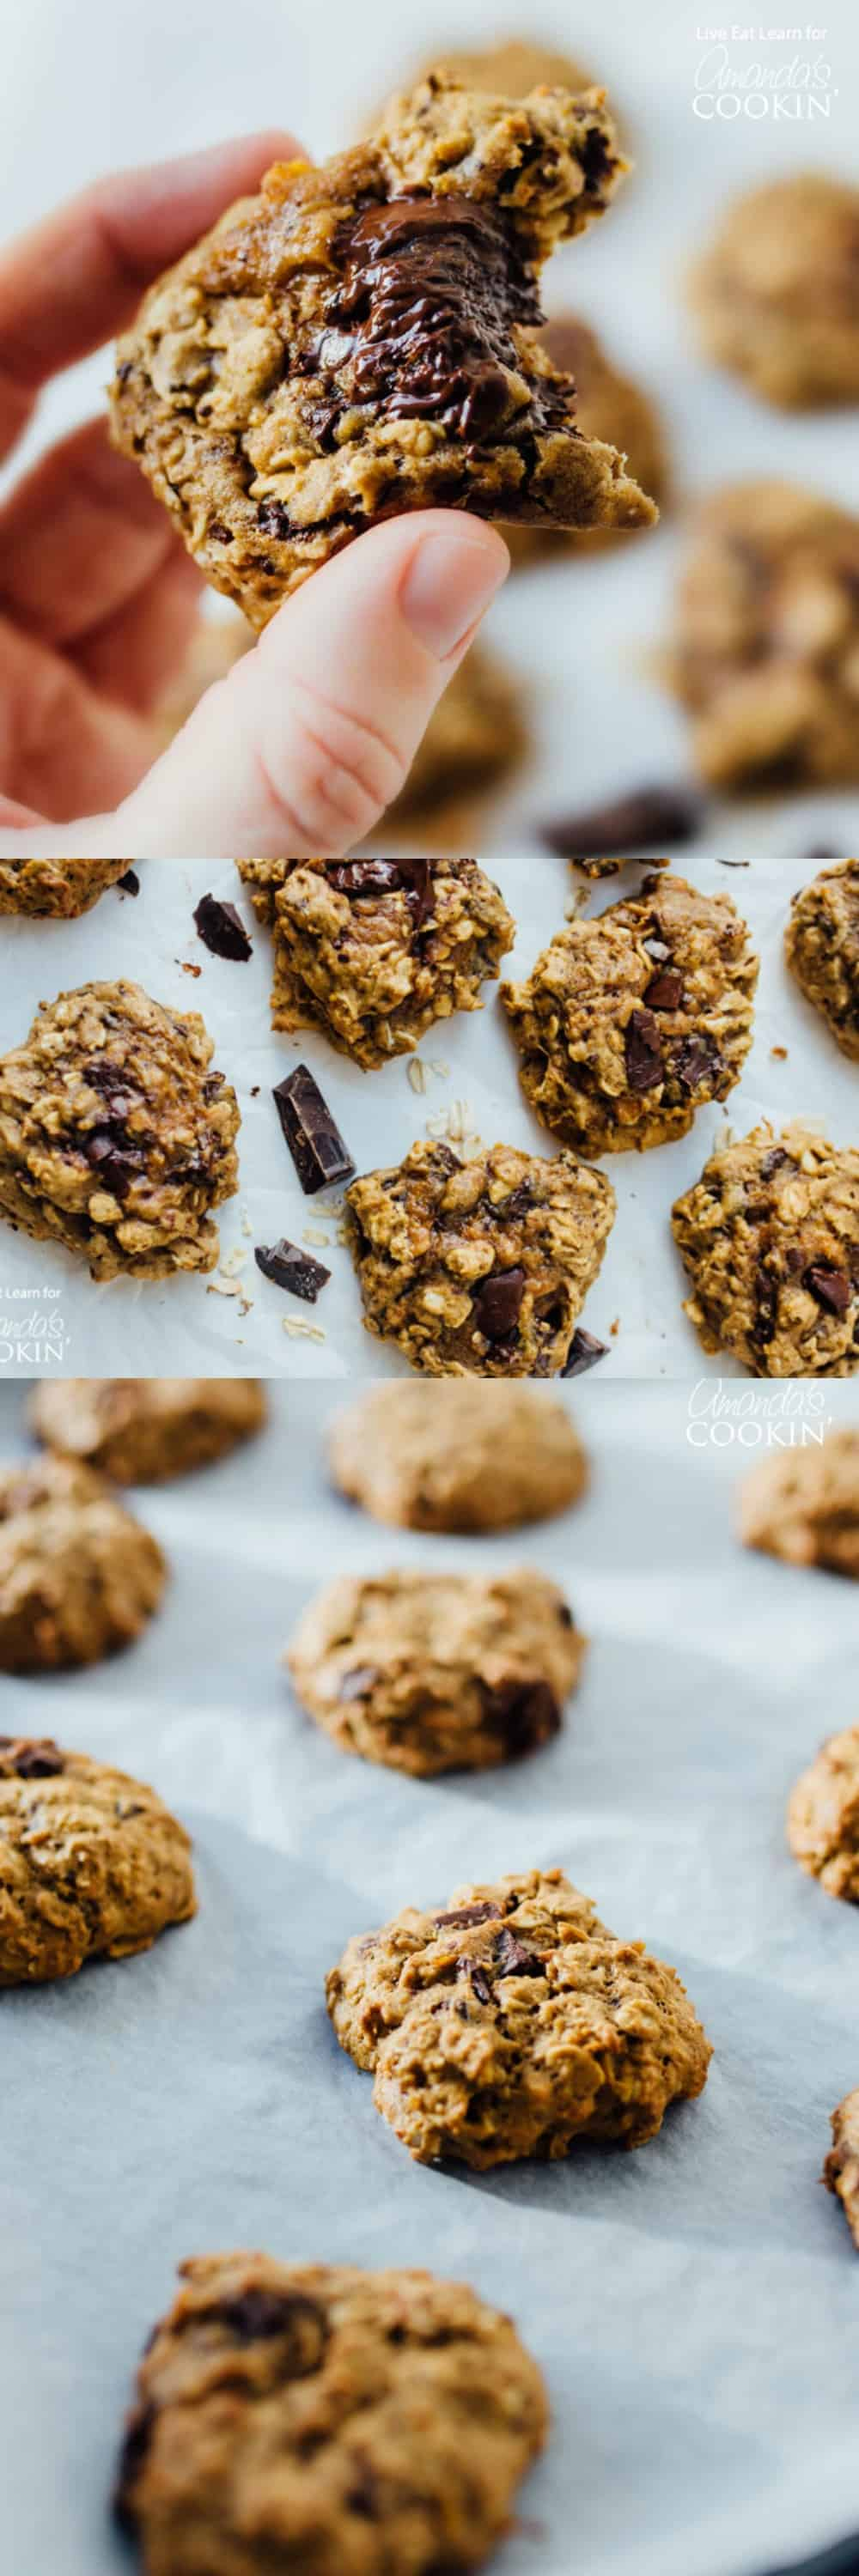 These Sweet Potato Oat Cookies are chocolatey, moist, and oaty, making them perfect for your holiday cookie exchange this year.